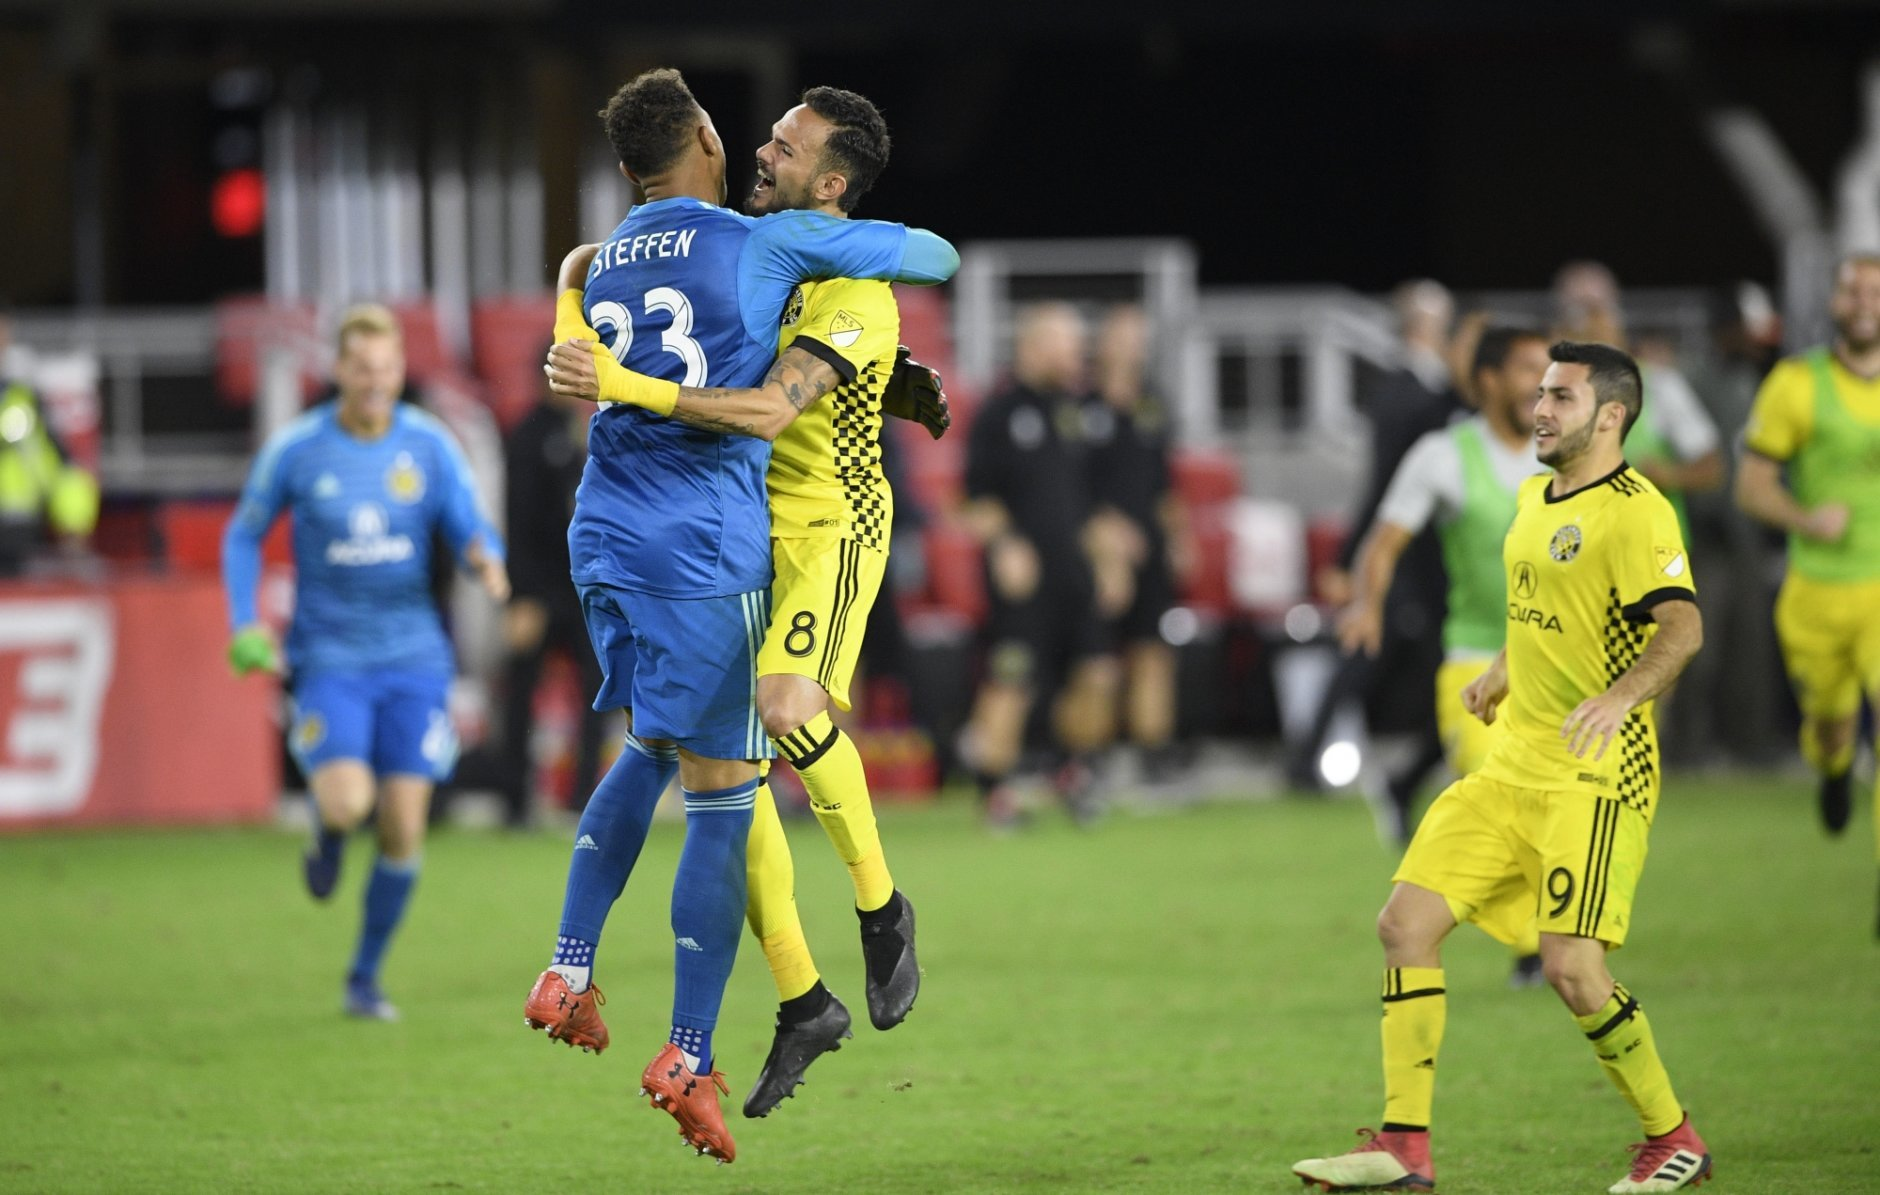 Columbus Crew SC goalkeeper Zack Steffen (23) celebrates with midfielder Artur (8) and defender Milton Valenzuela, right, after winning an MLS playoff soccer match in penalty kicks against D.C. United, Thursday, Nov. 1, 2018, in Washington. The Crew SC won 2-2 (3-2) in penalty kicks. (AP Photo/Nick Wass)